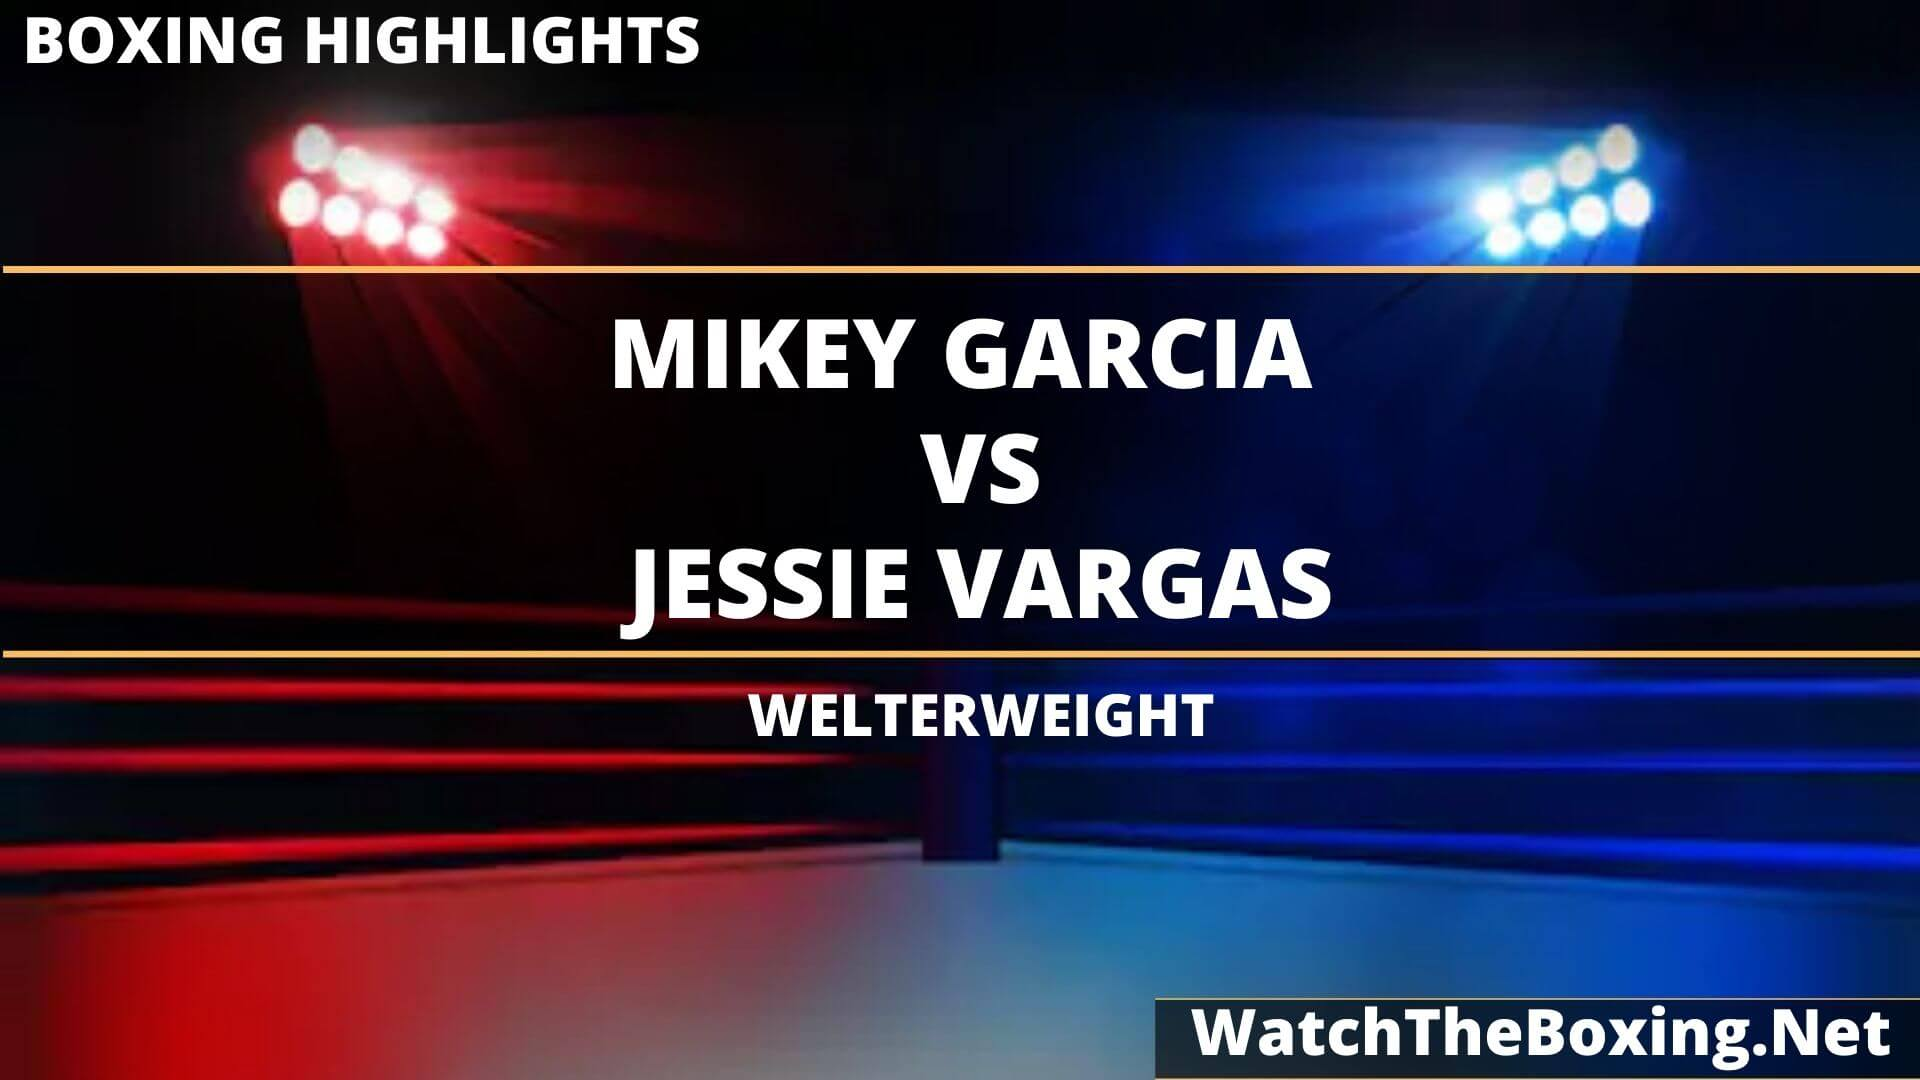 Mikey Garcia Vs Jessie Vargas Highlights 2020